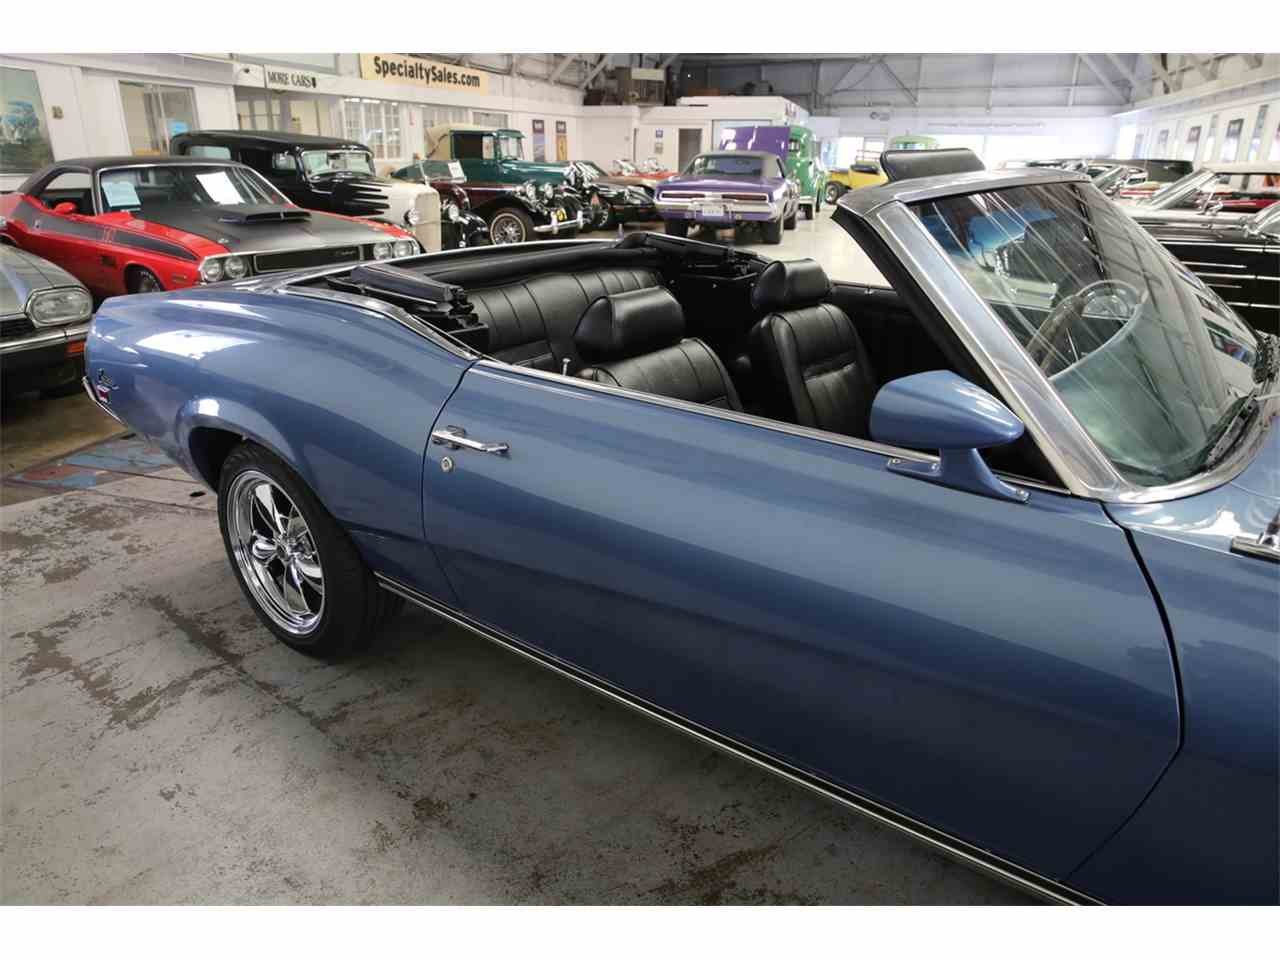 Large Picture of '69 Mercury Cougar located in California - $26,000.00 - IEVB